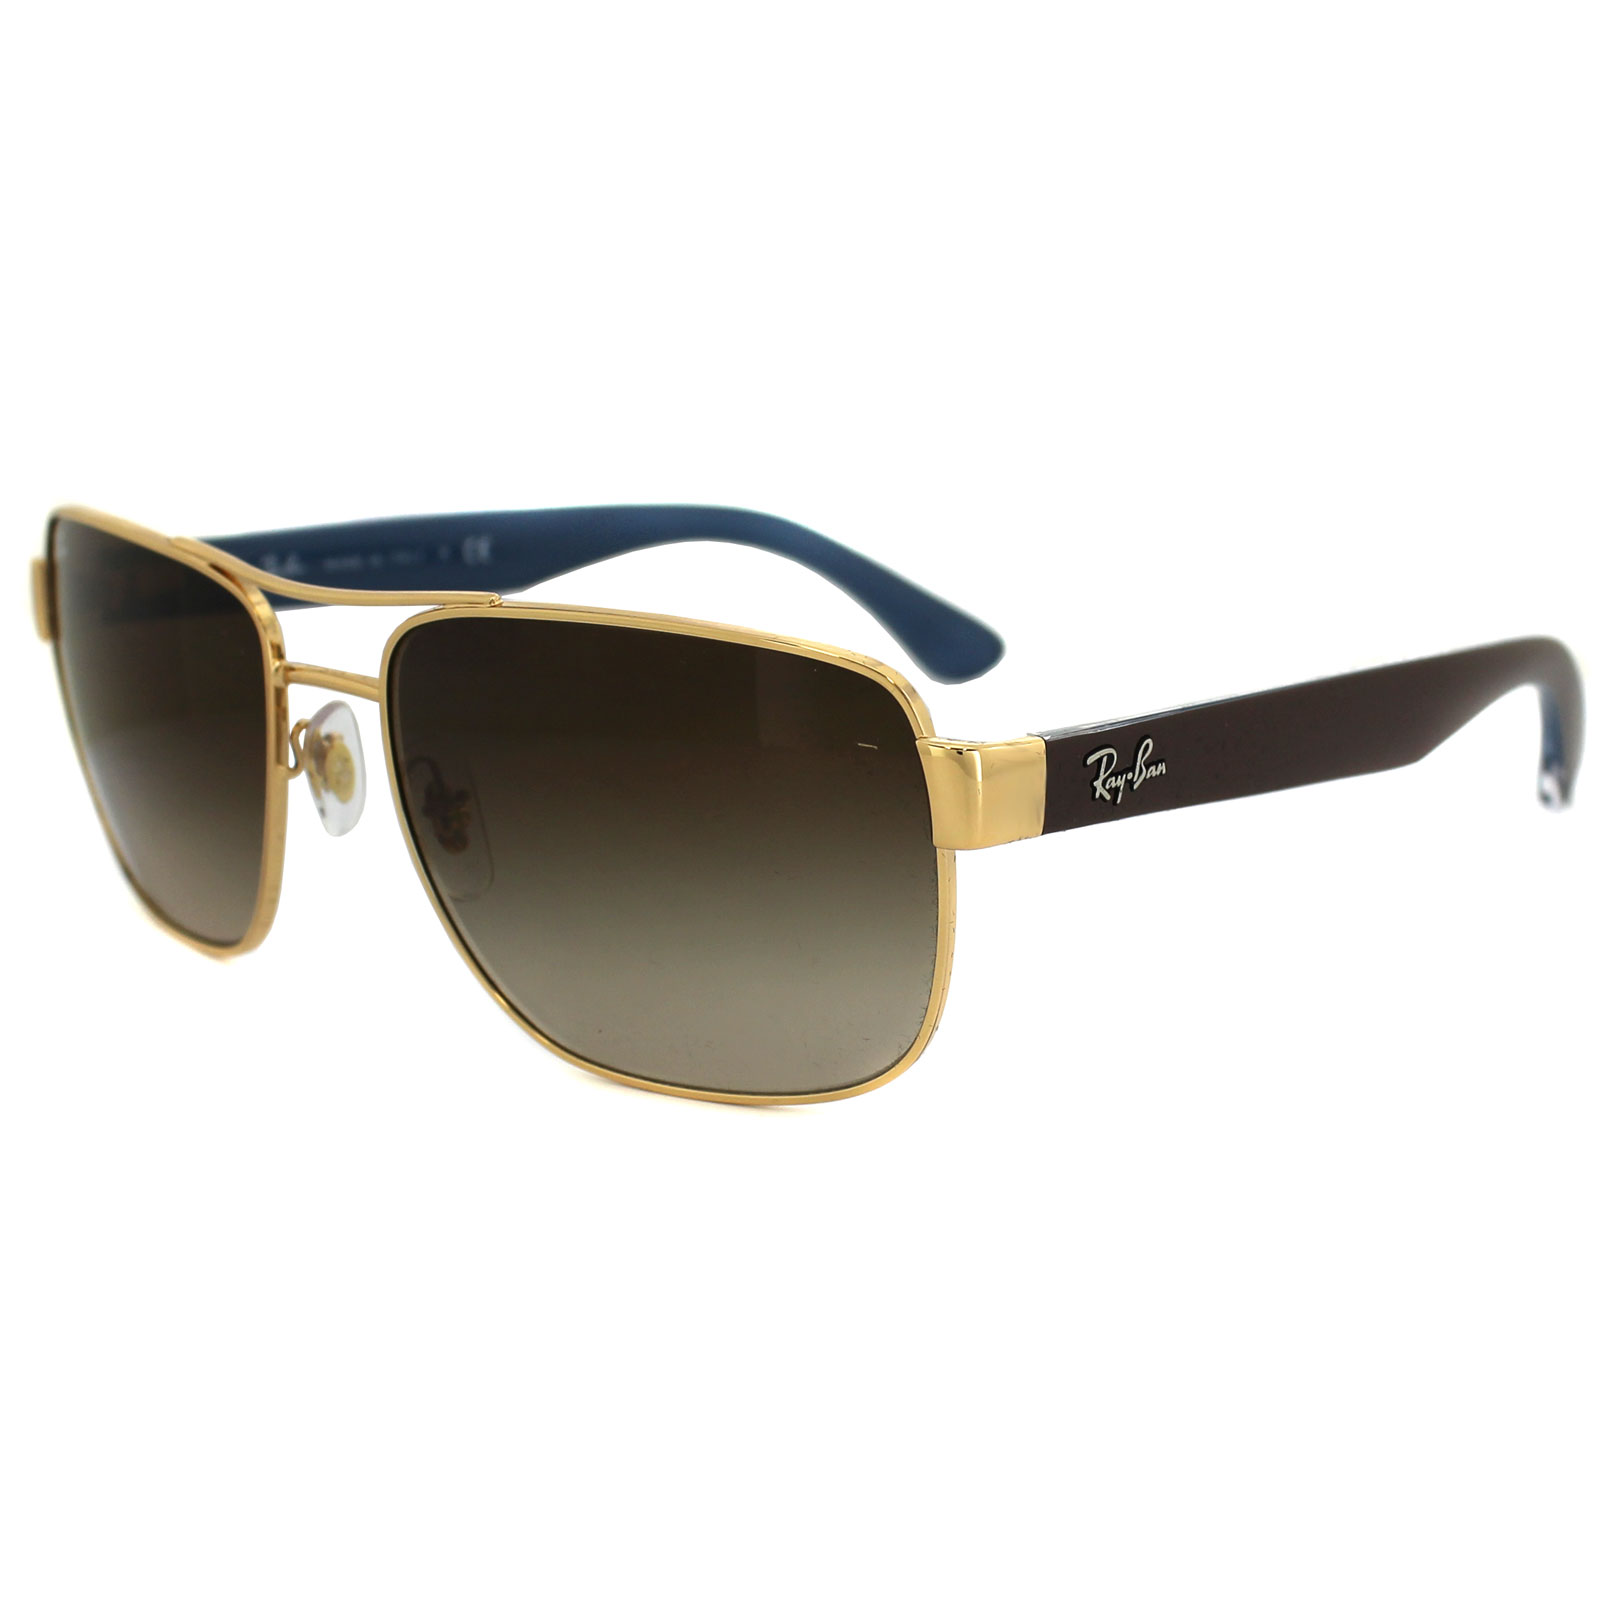 ray ban aviator sunglasses gold price in india